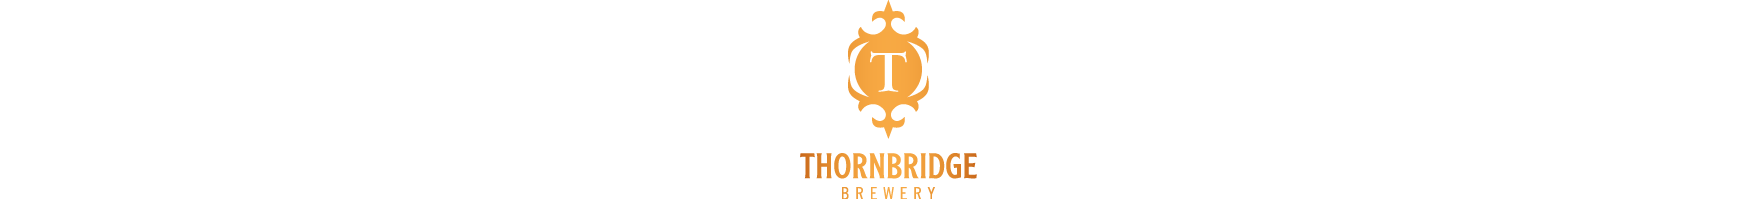 Thornbridge 2.png